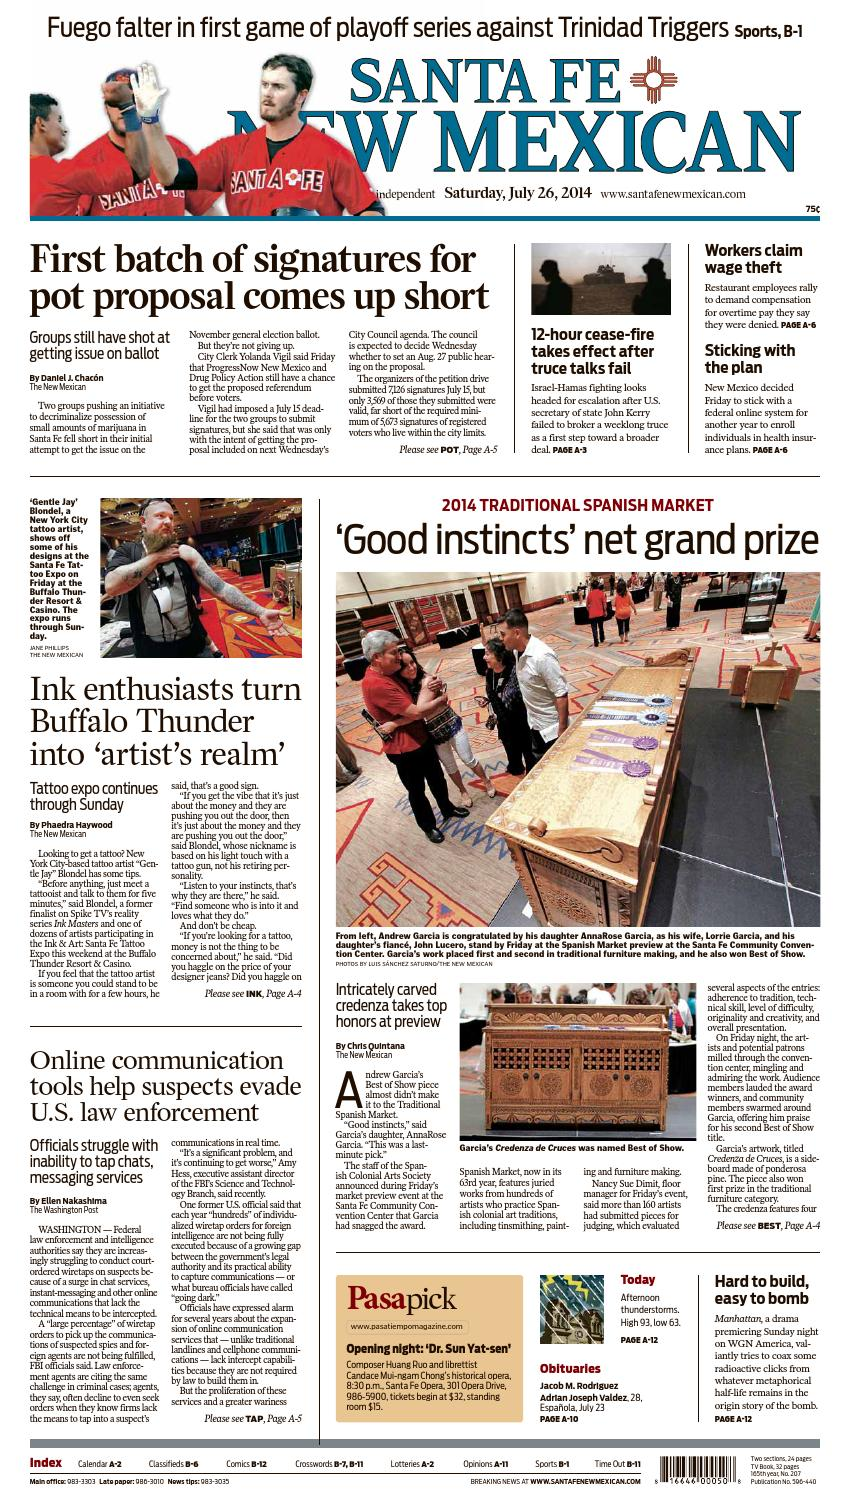 Santa Fe New Mexican, July 26, 2014 by The New Mexican - issuu